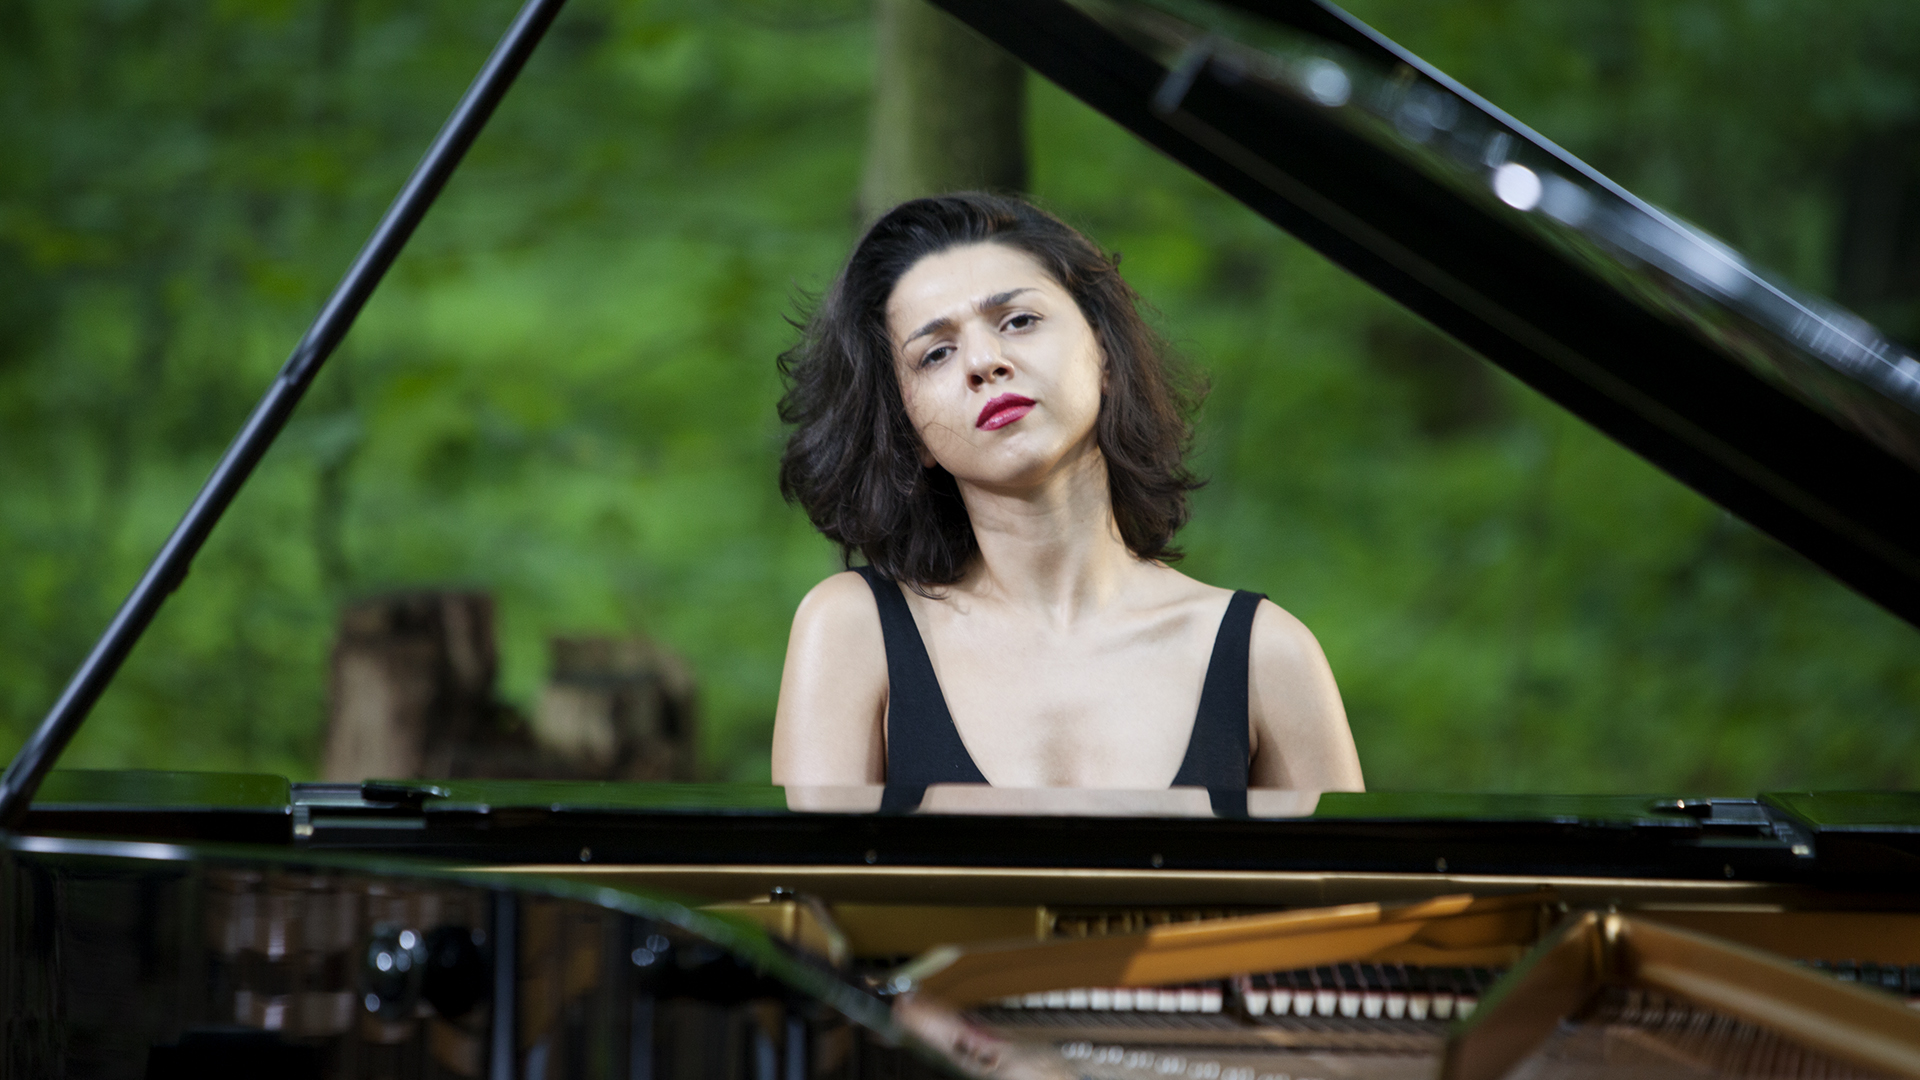 Khatia Buniatishvili: Mind in the wilderness